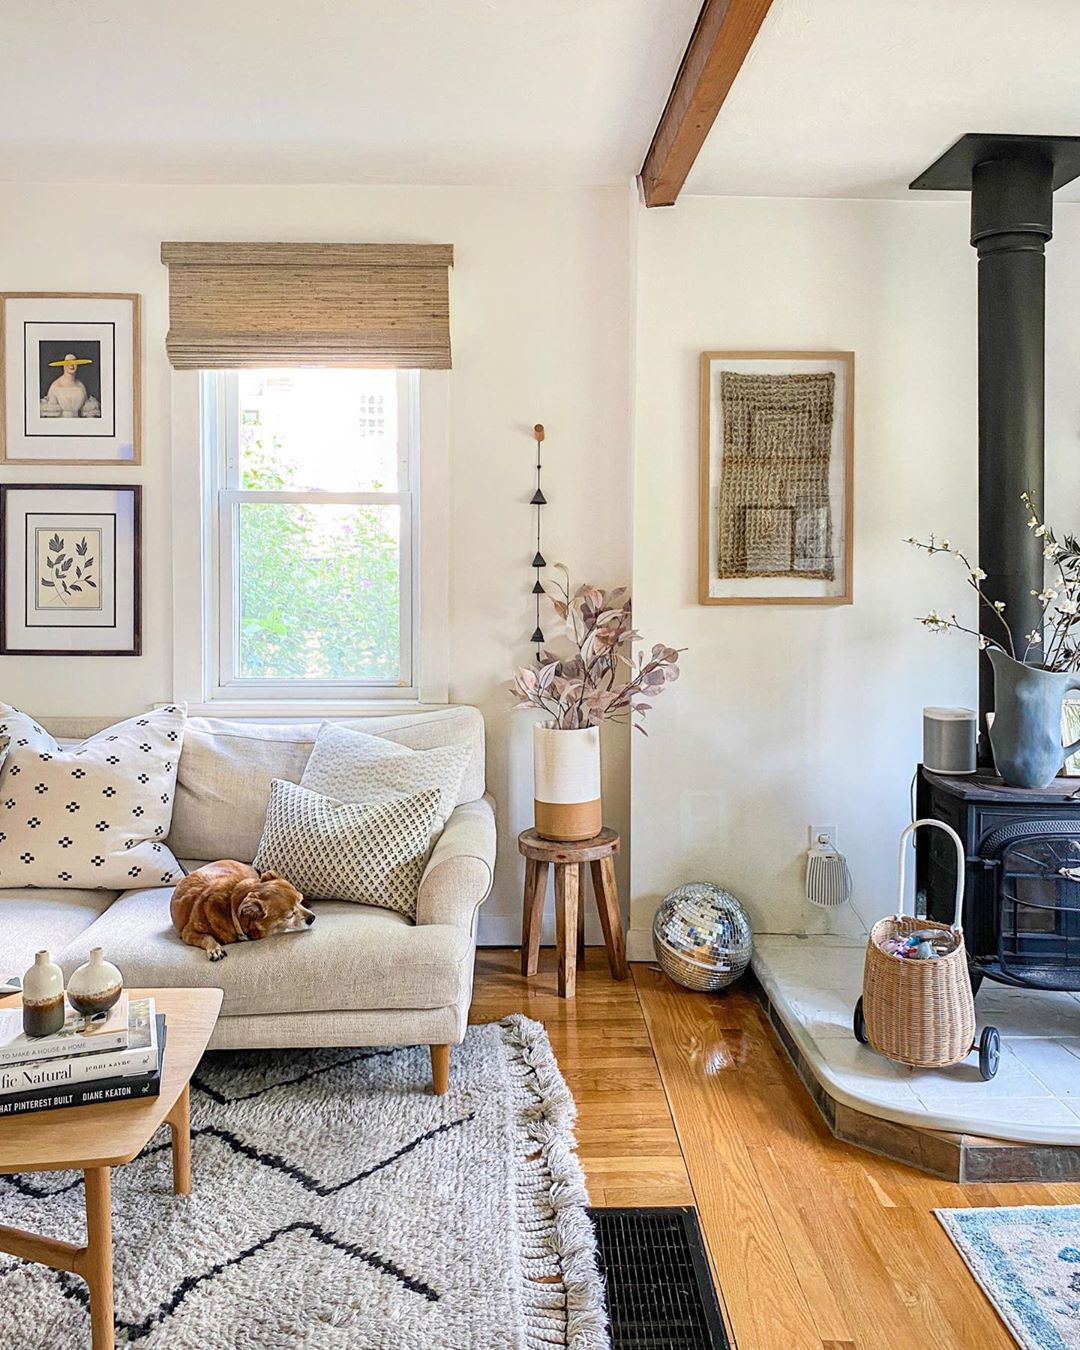 15 Cozy Farmhouse Design and Décor Ideas to Try at Home